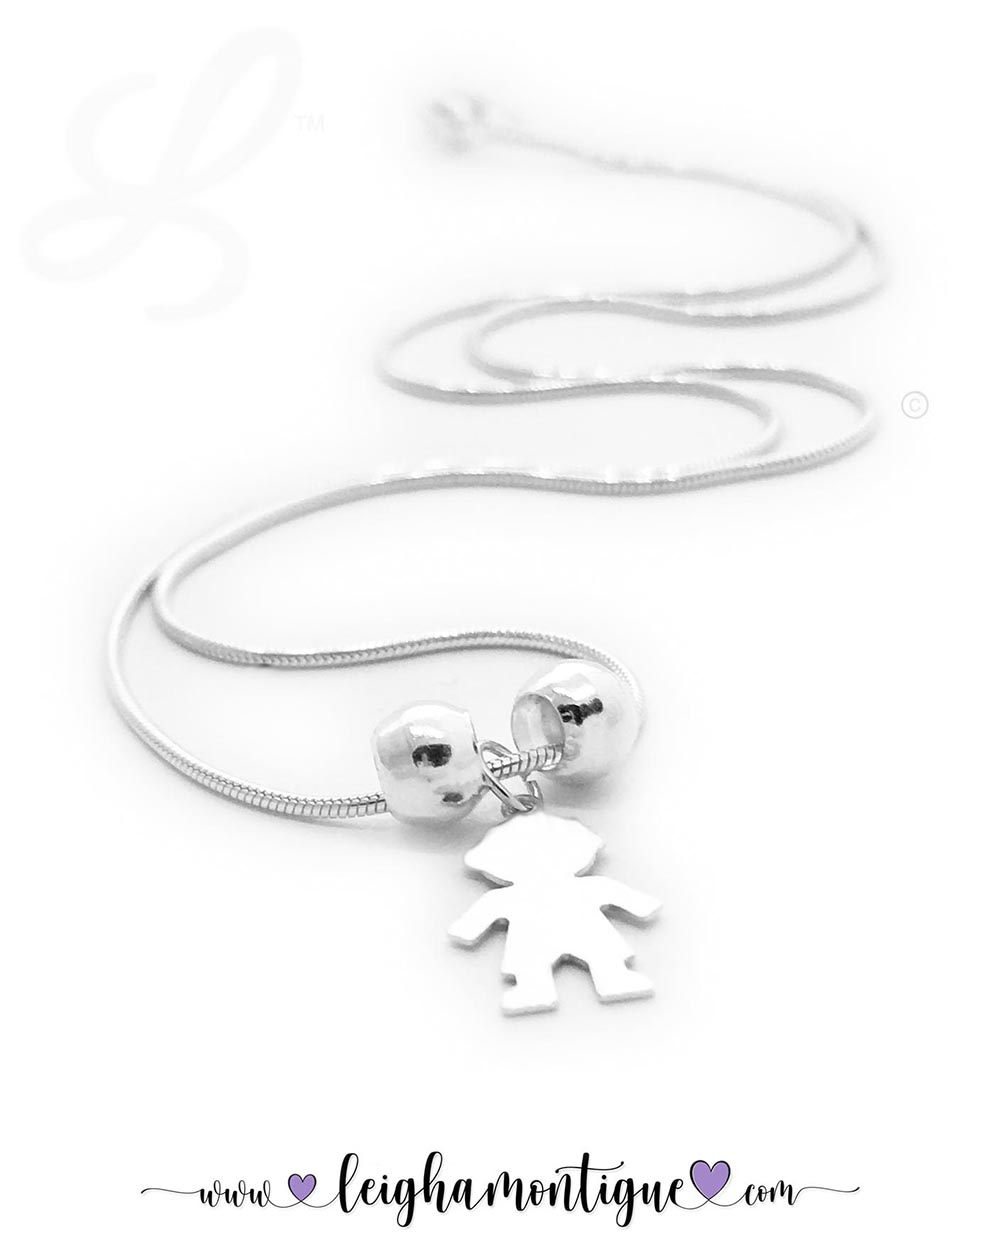 Mom of 1 Boy Charm Necklace DBL-N-N6-1Boys   1 Boy Charm Necklace shows 1 boy charm with spacer balls on a snake chain necklace. Everything is .925 sterling silver.